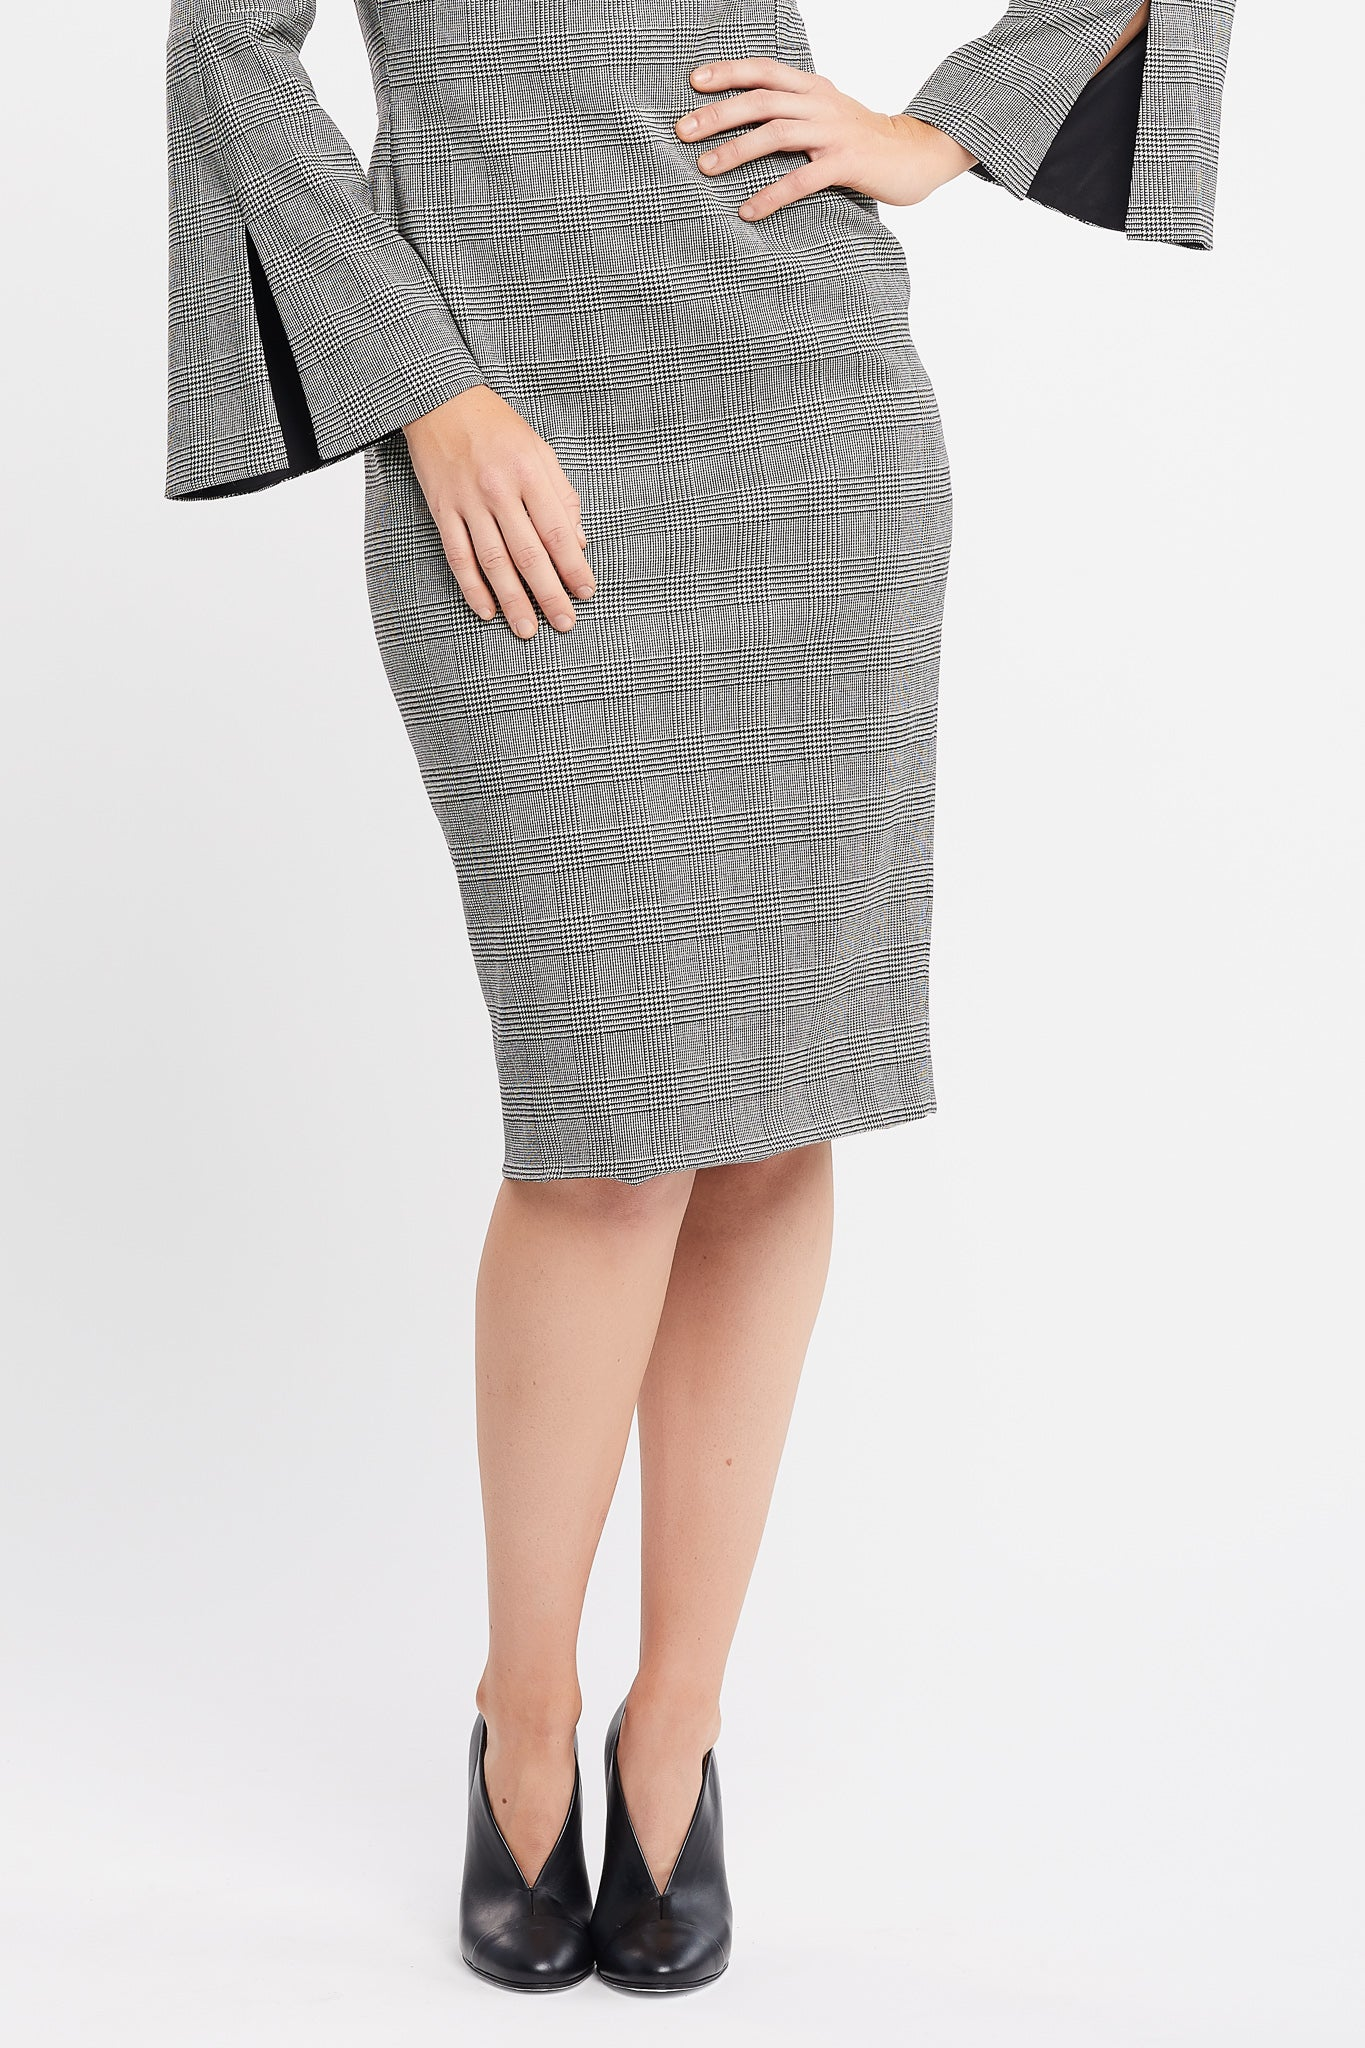 Dina Long Flared Sleeve Sheath Prince of Wales Work and Cocktail Dress